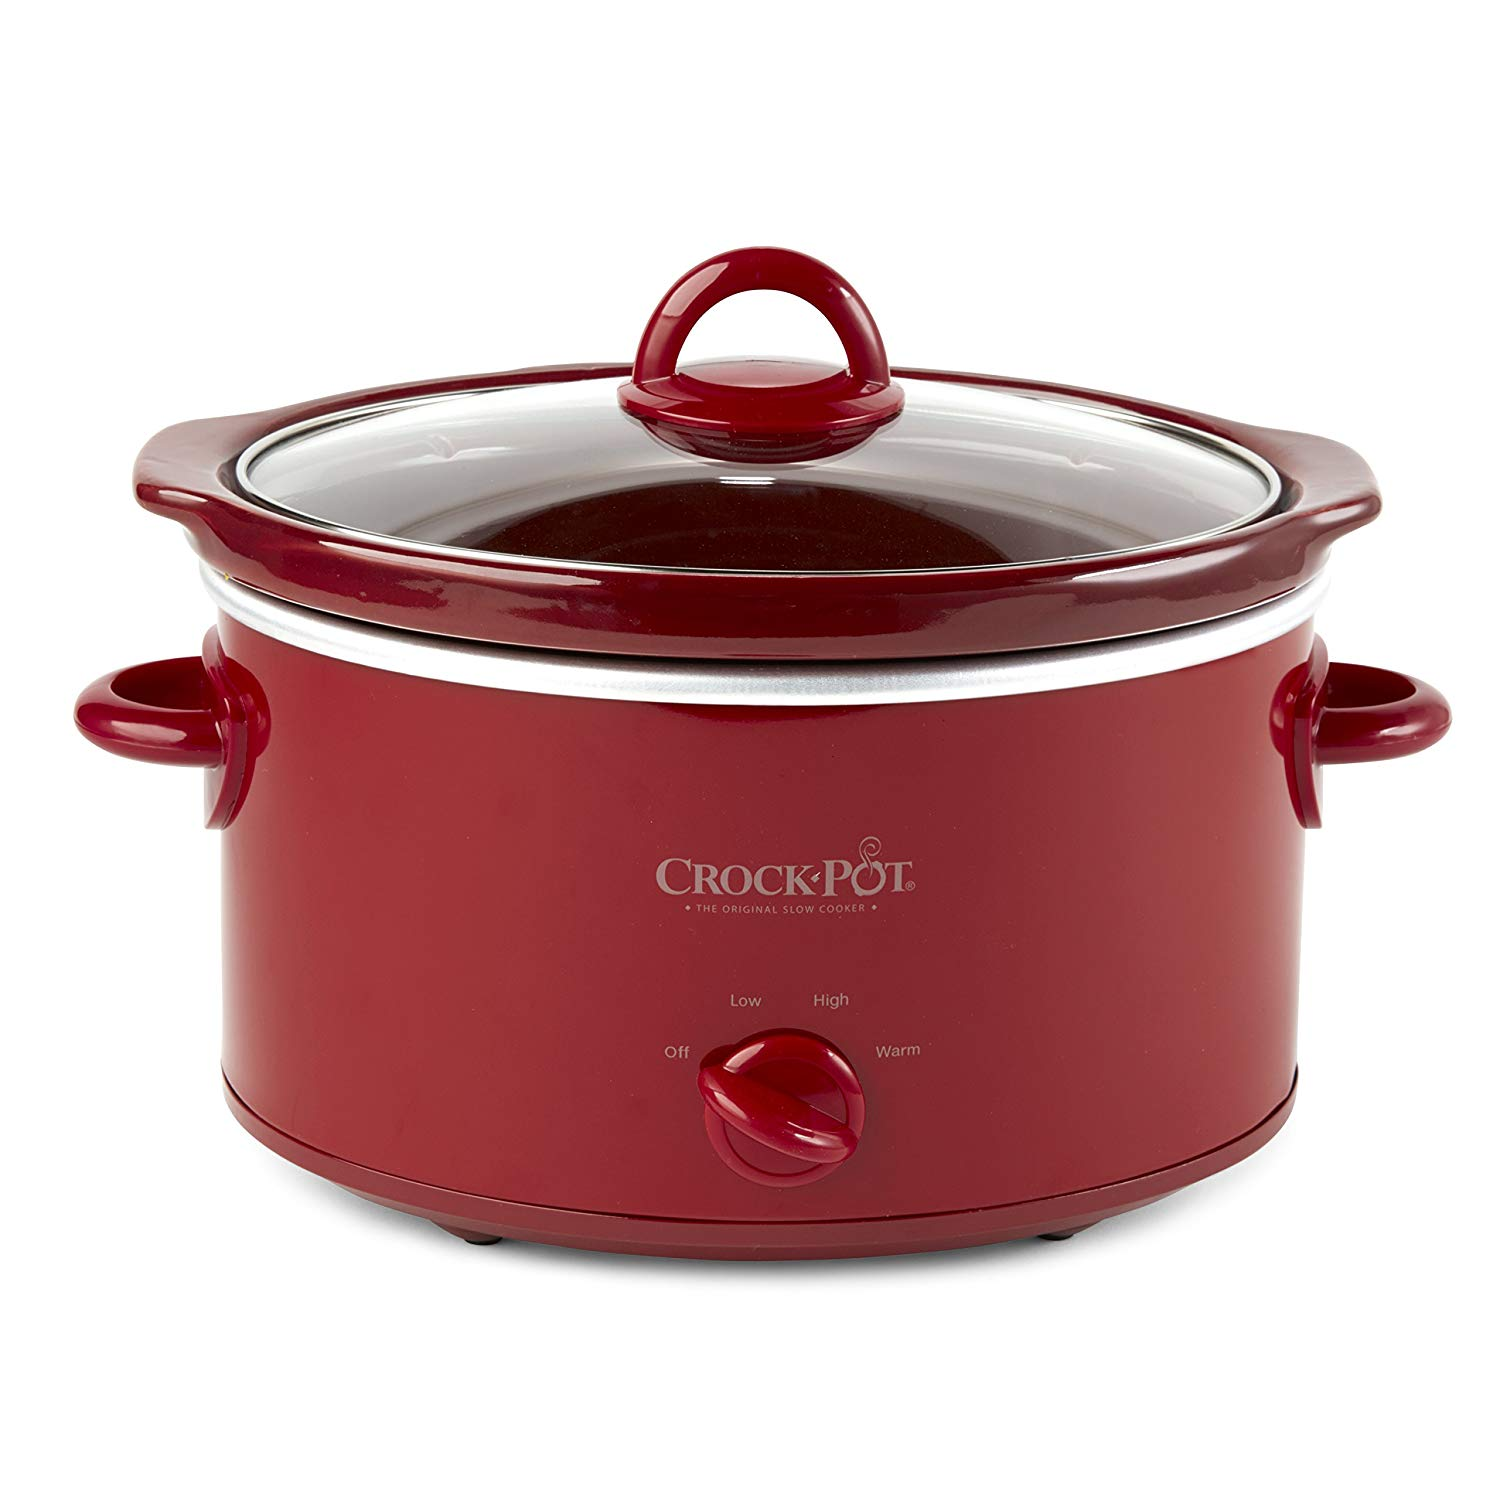 Best Slow Cooker for Small Families: Crock-Pot 4-Quart Slow Cooker